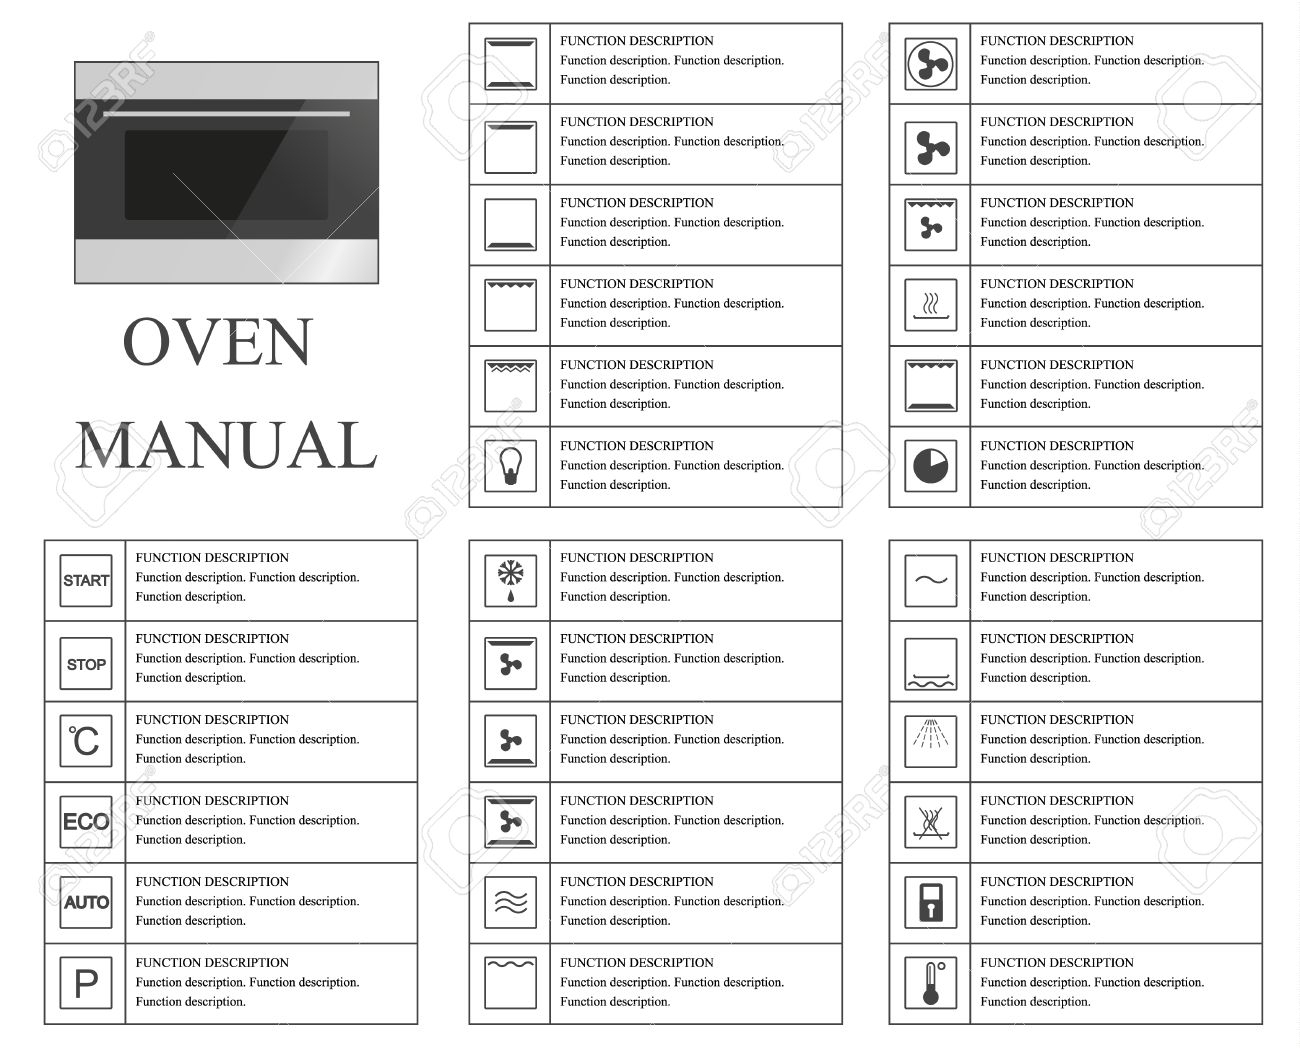 oven manual symbols instructions signs and symbols for oven rh 123rf com Bosch Oven Manual PDF Bosch Oven Manual PDF